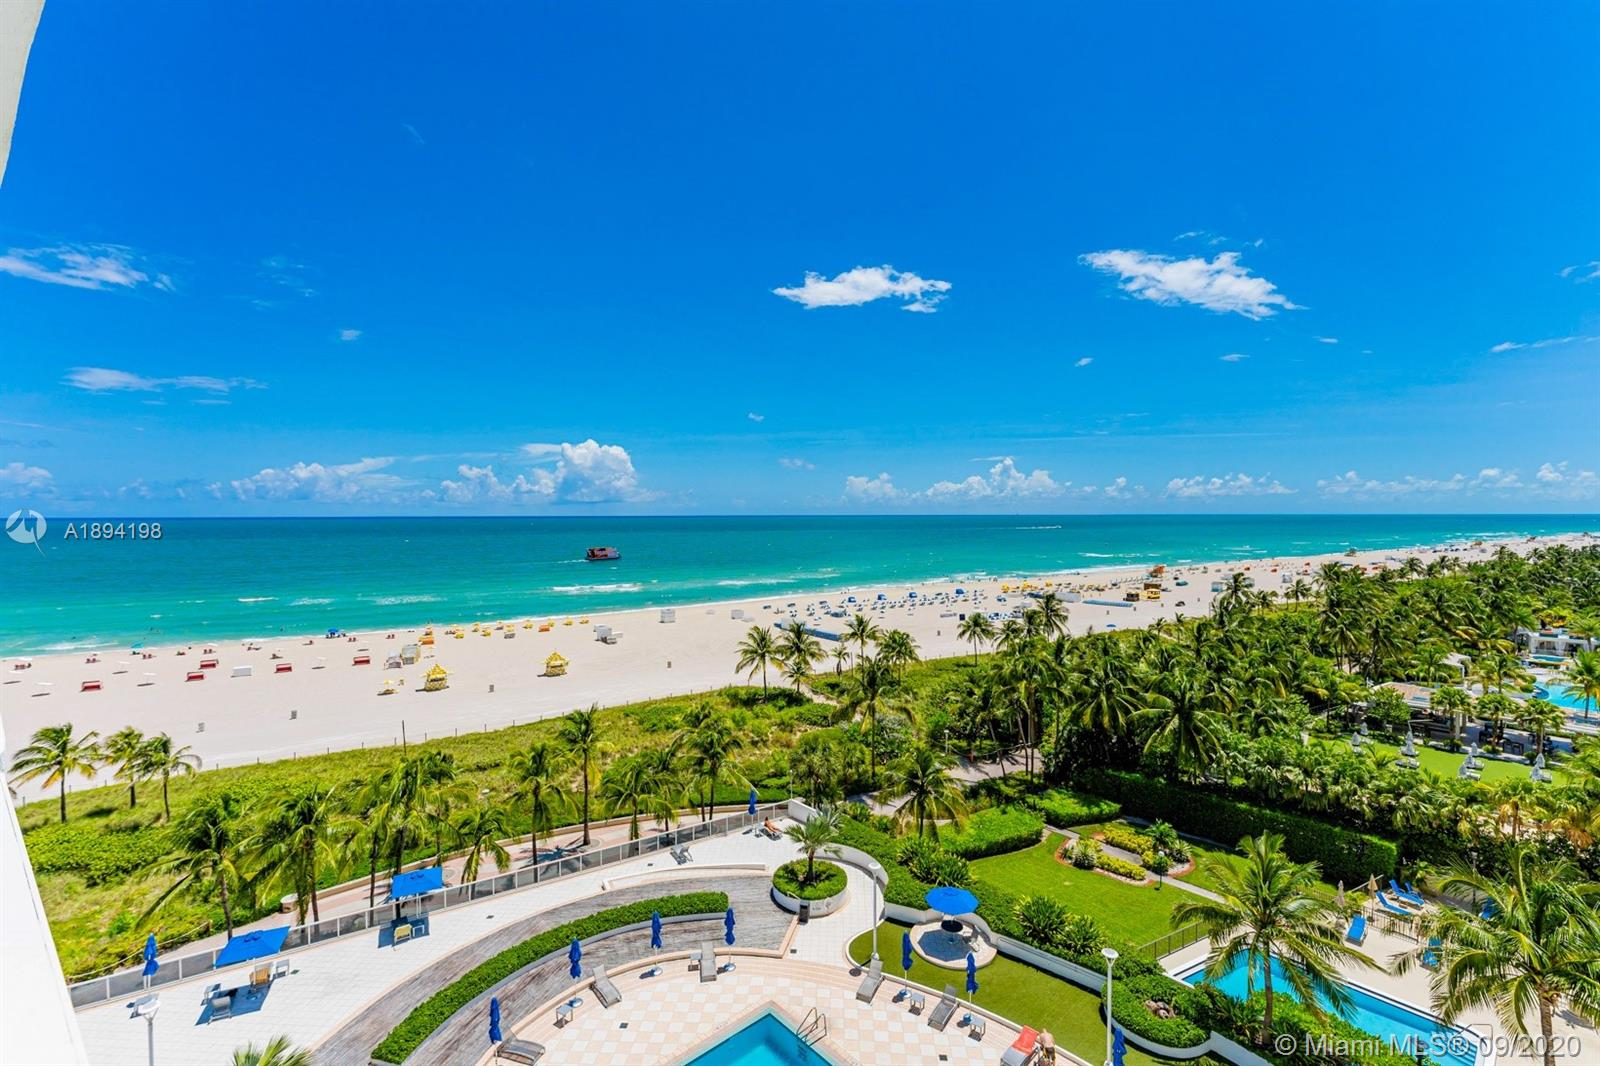 100  LINCOLN RD #944 For Sale A1894198, FL